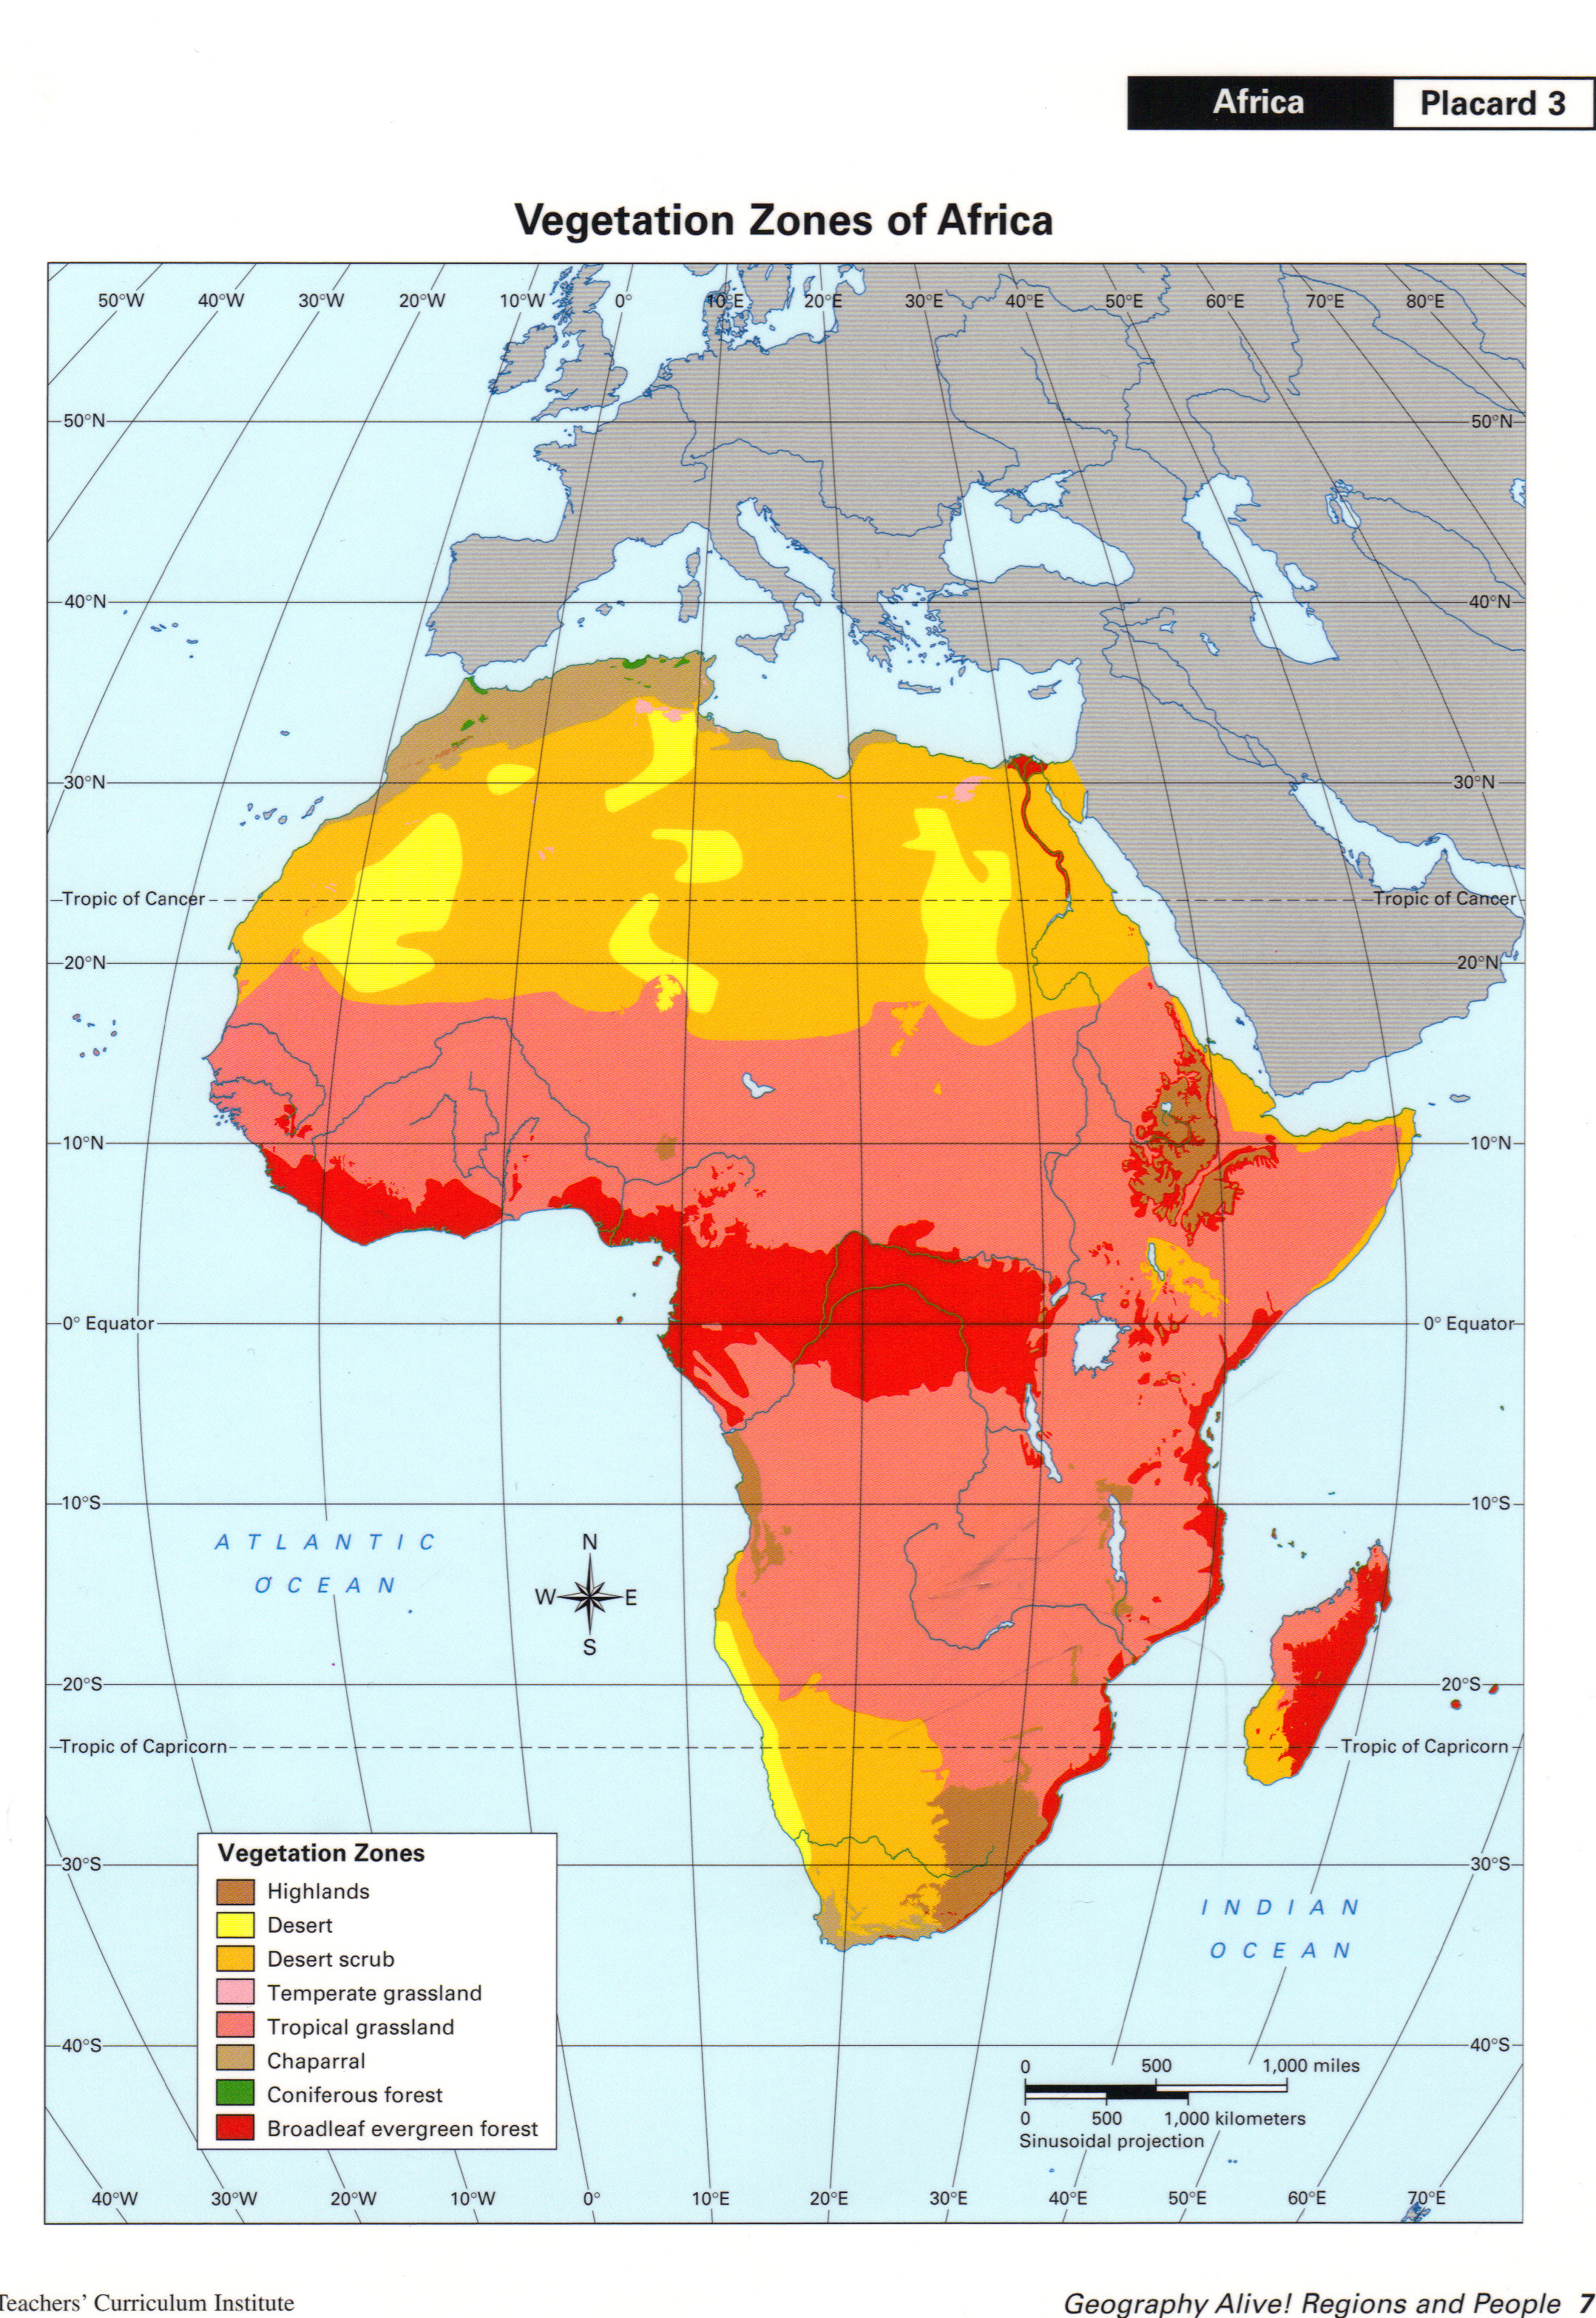 geography alive africa map